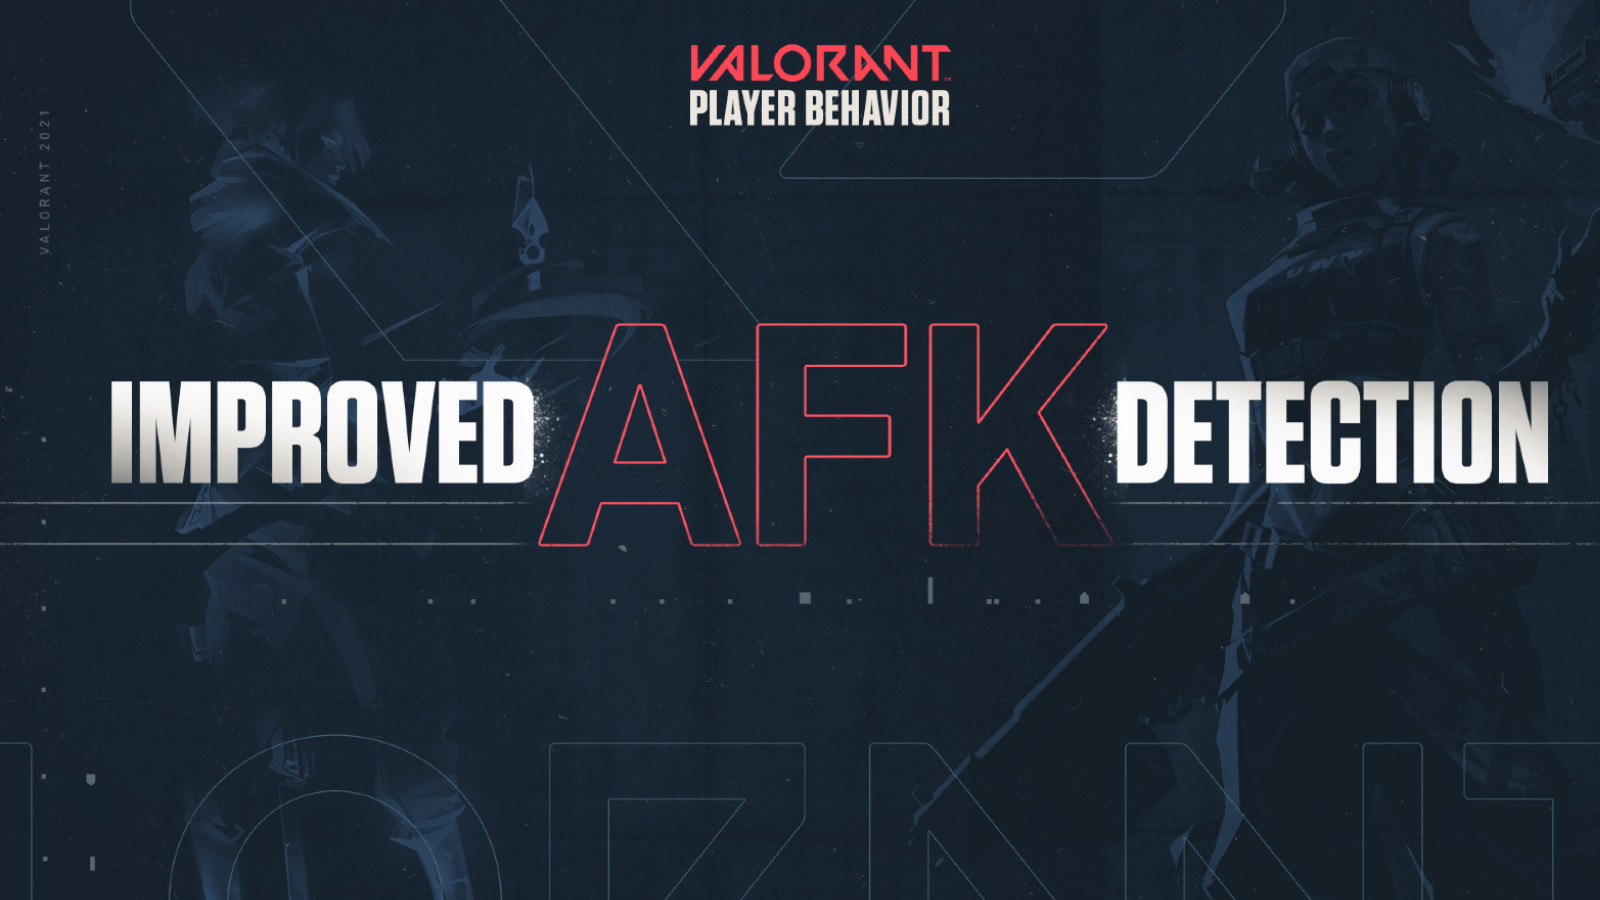 Valorant AFK detection